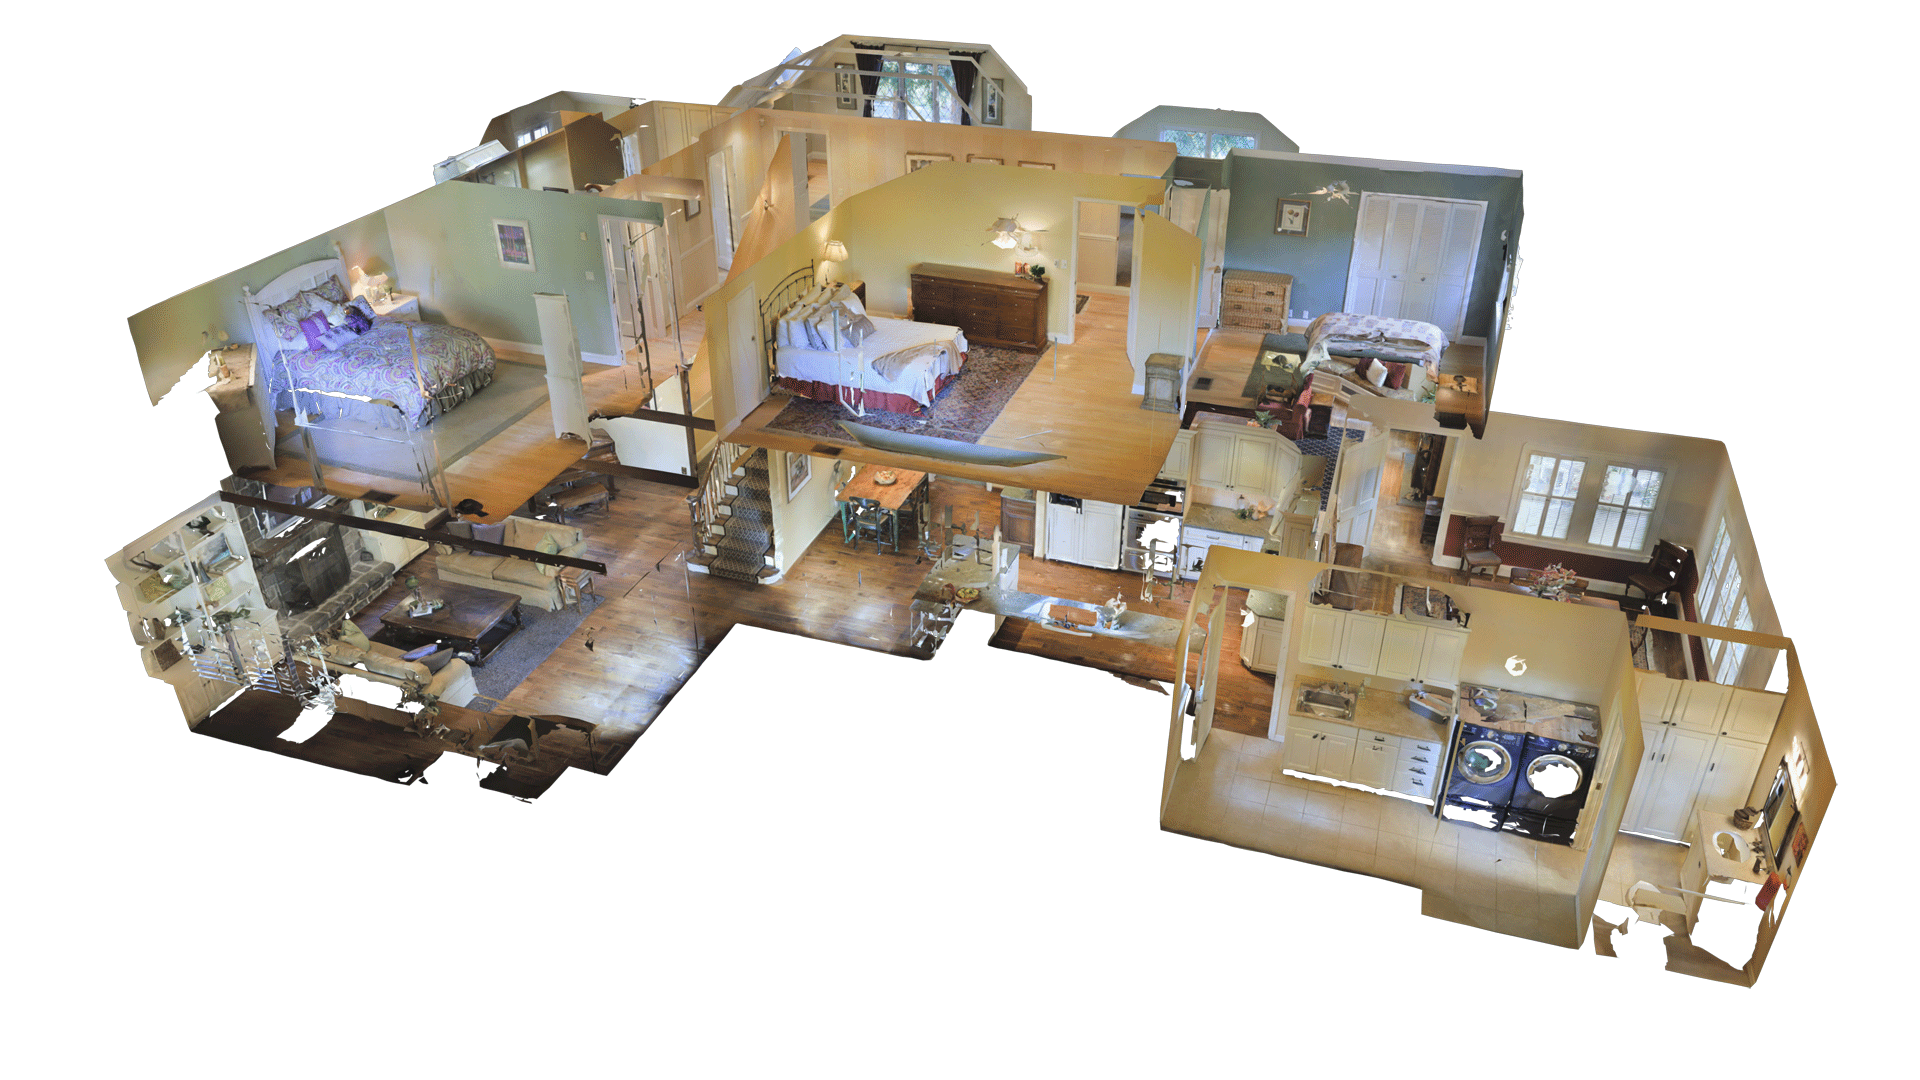 Image from Matterport